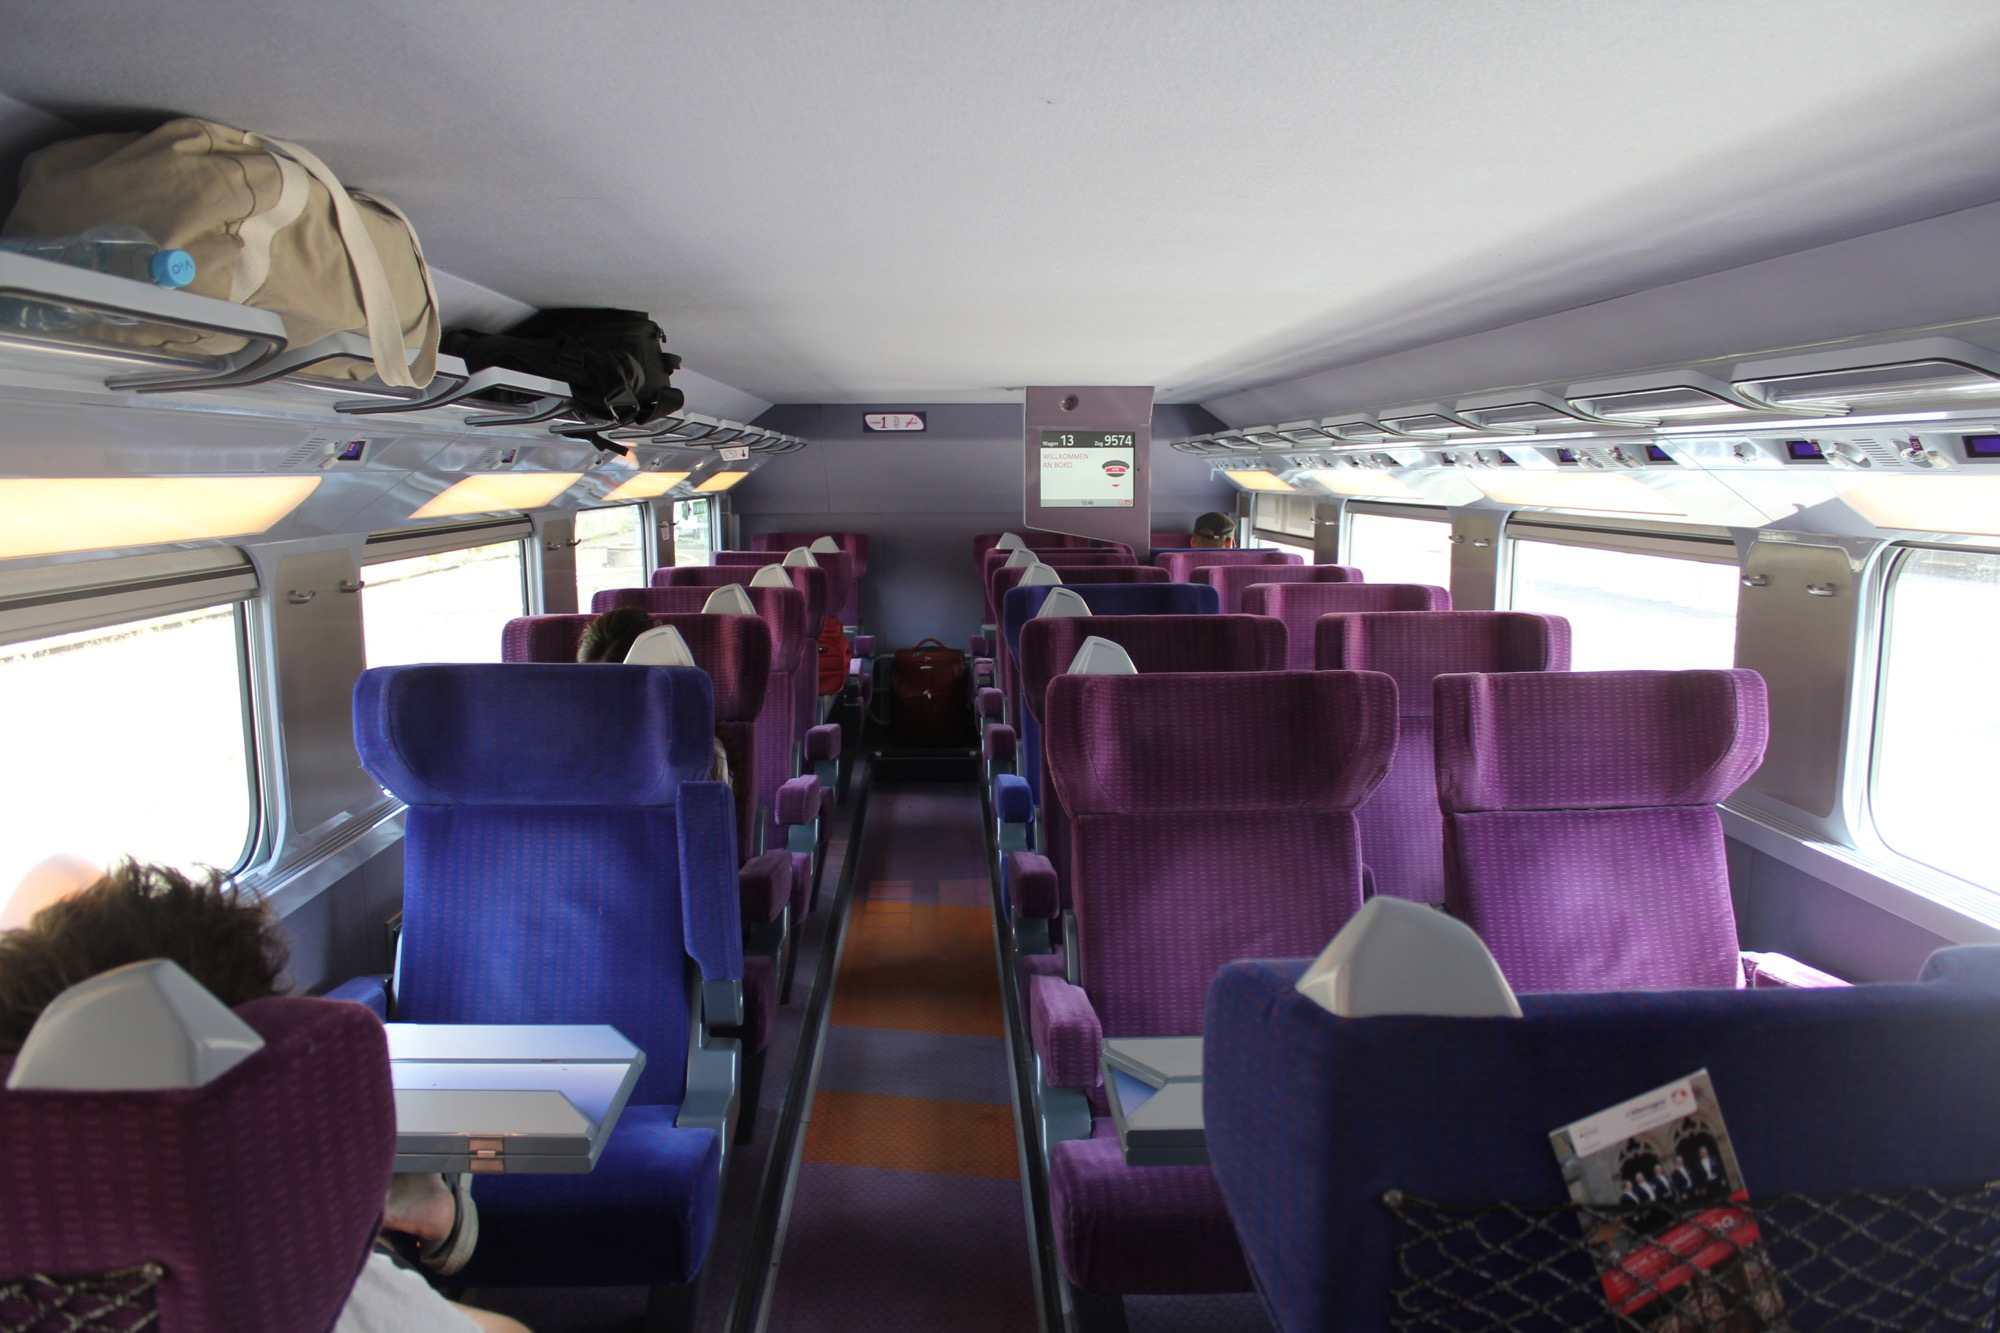 velvet 5in1 air sofa bed reviews armless corner tgv first class from stuttgart to paris live and let 39s fly